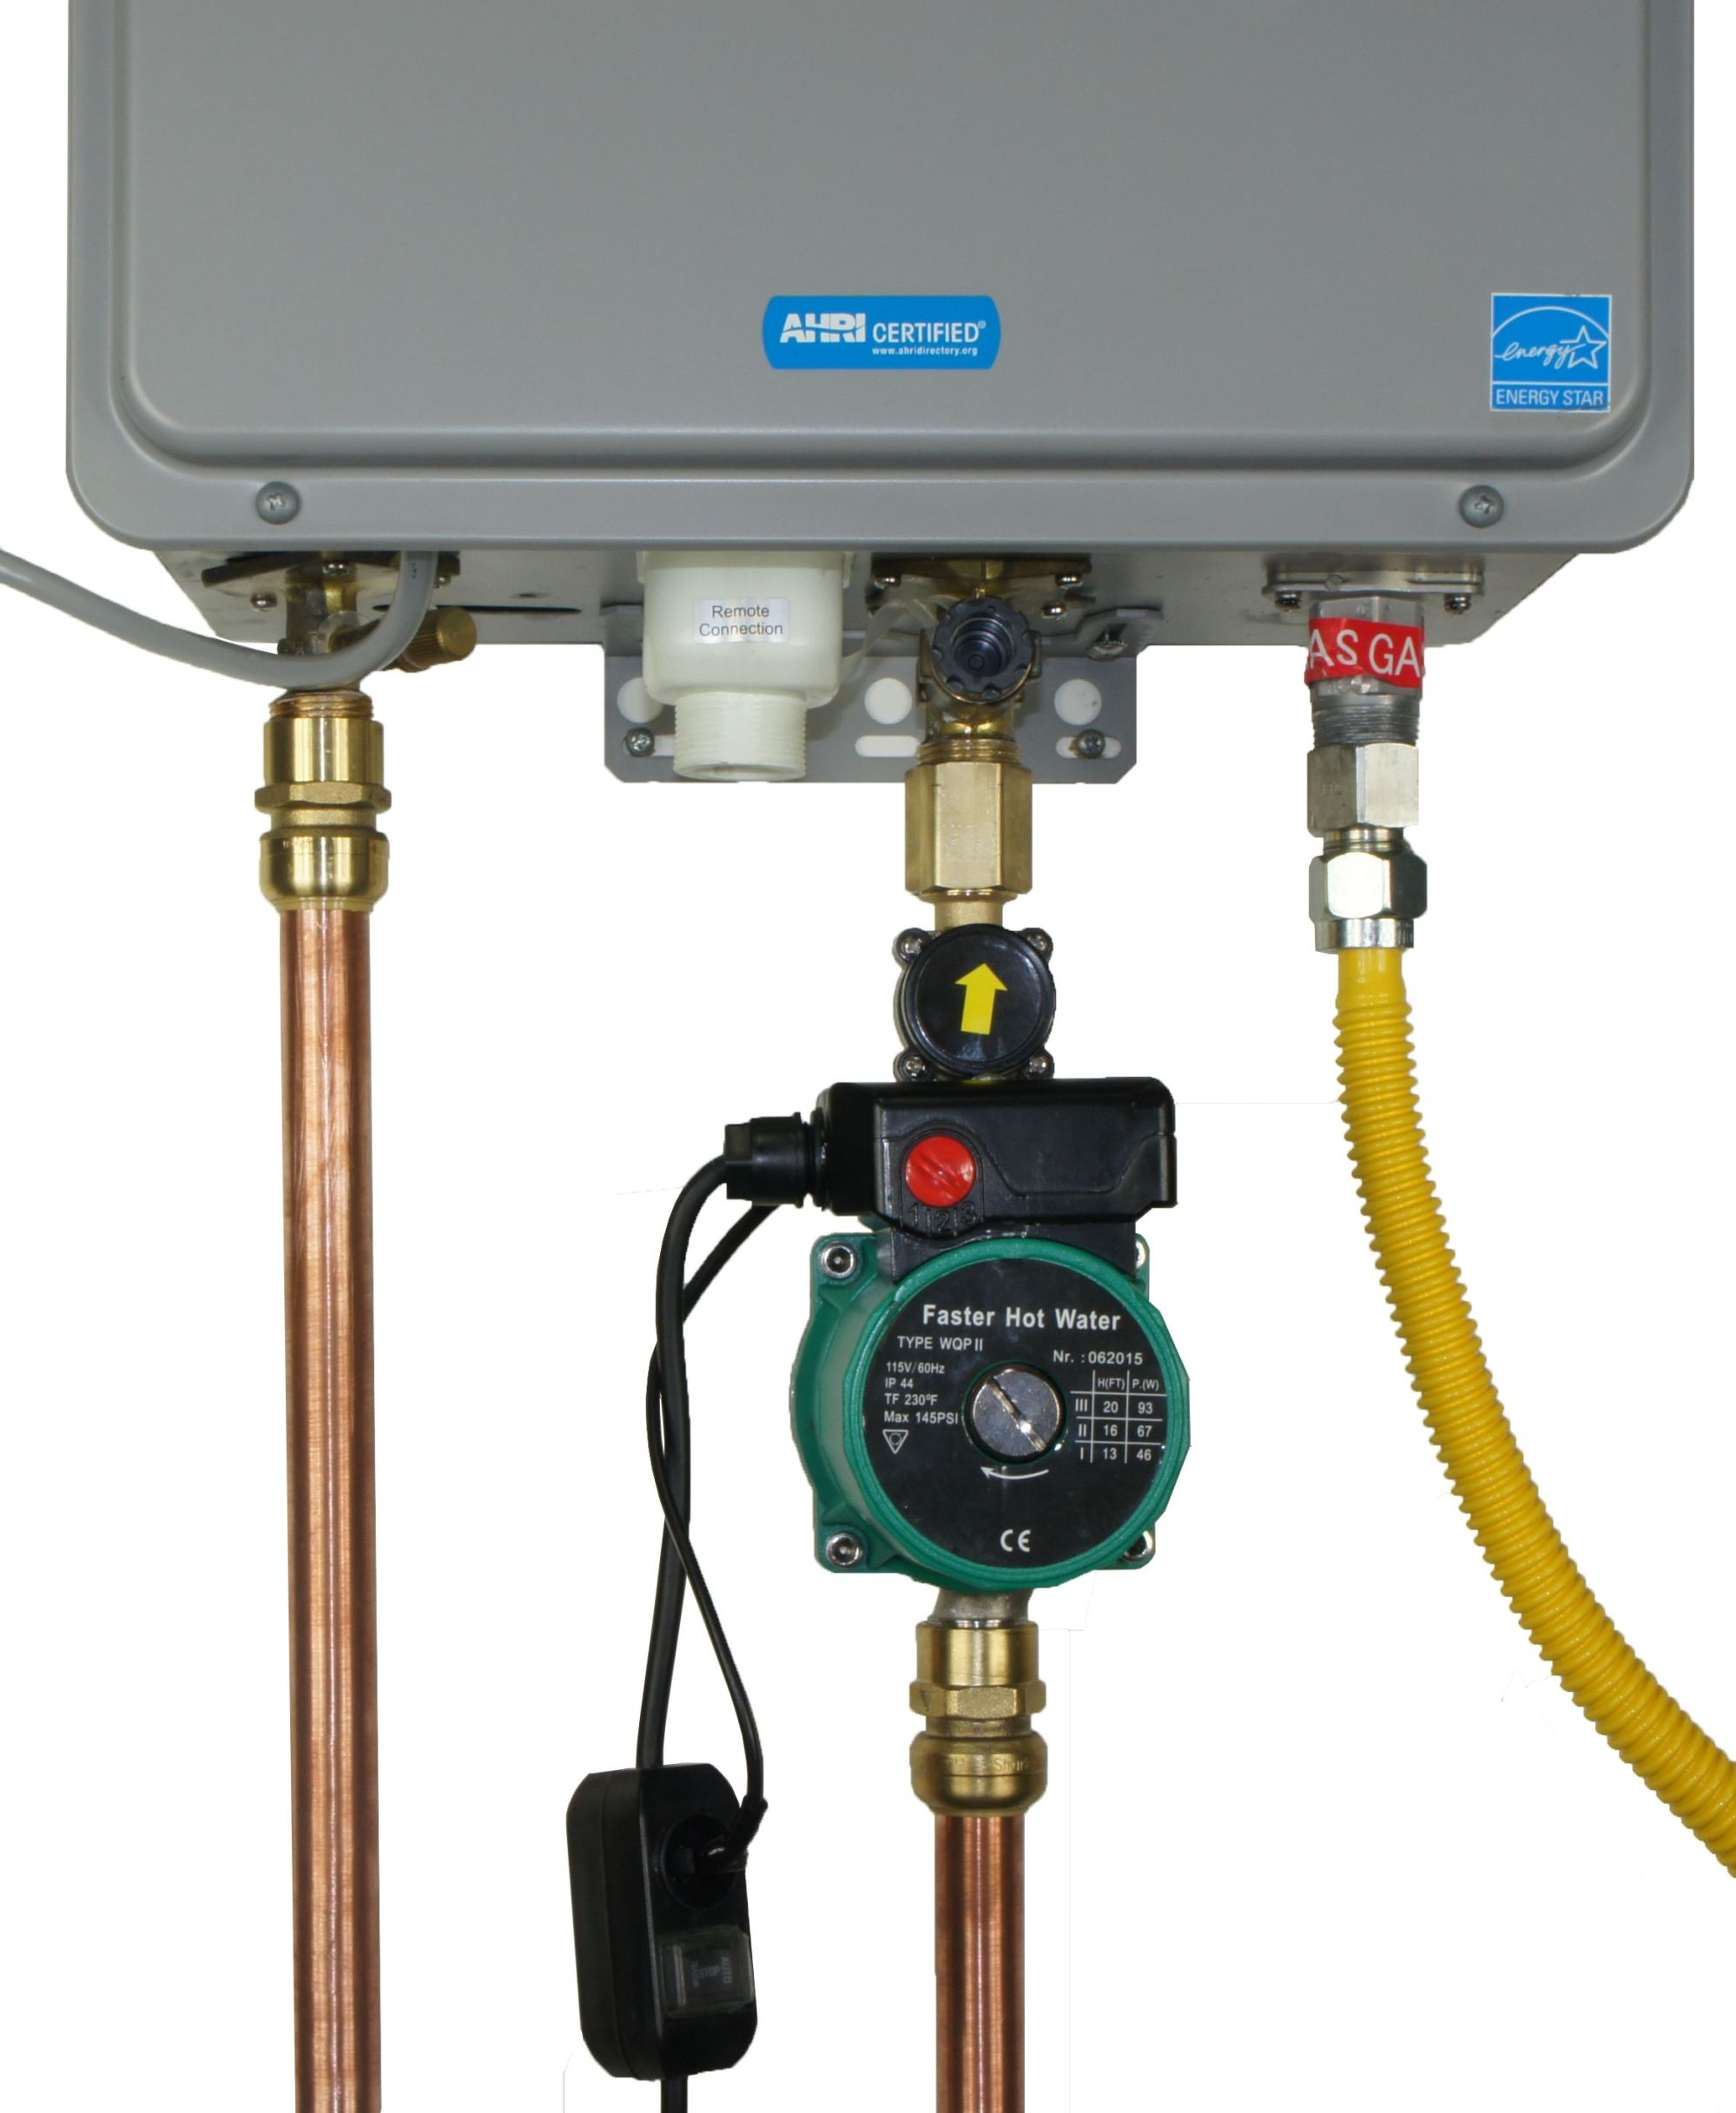 hight resolution of image of a hot water circulator pump installed on a tankless water heater